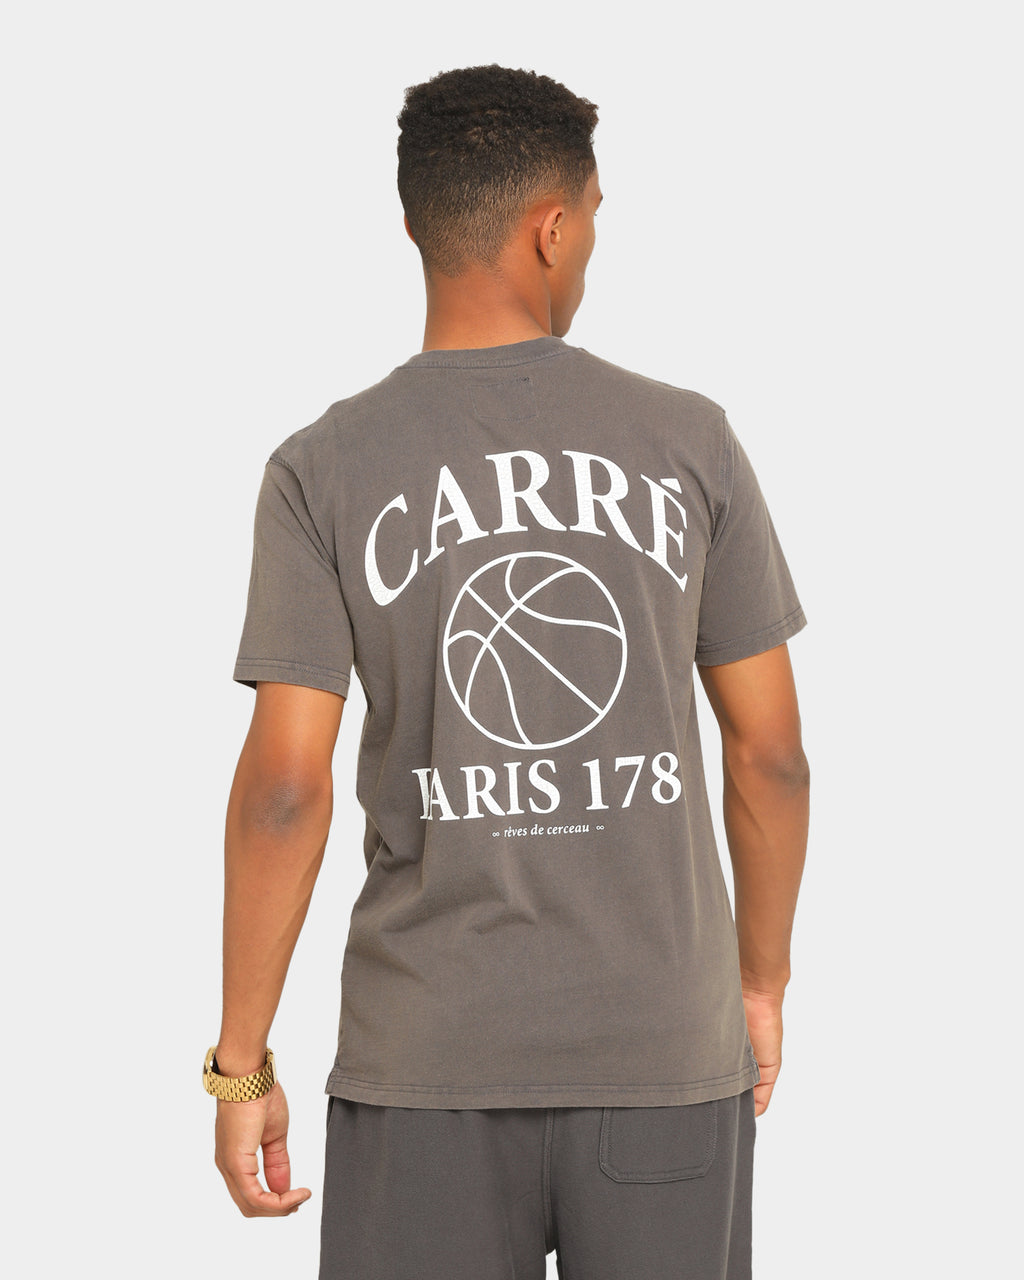 Carré Men's Hoop Dreams Classique Short Sleeve T-Shirt Grey/White